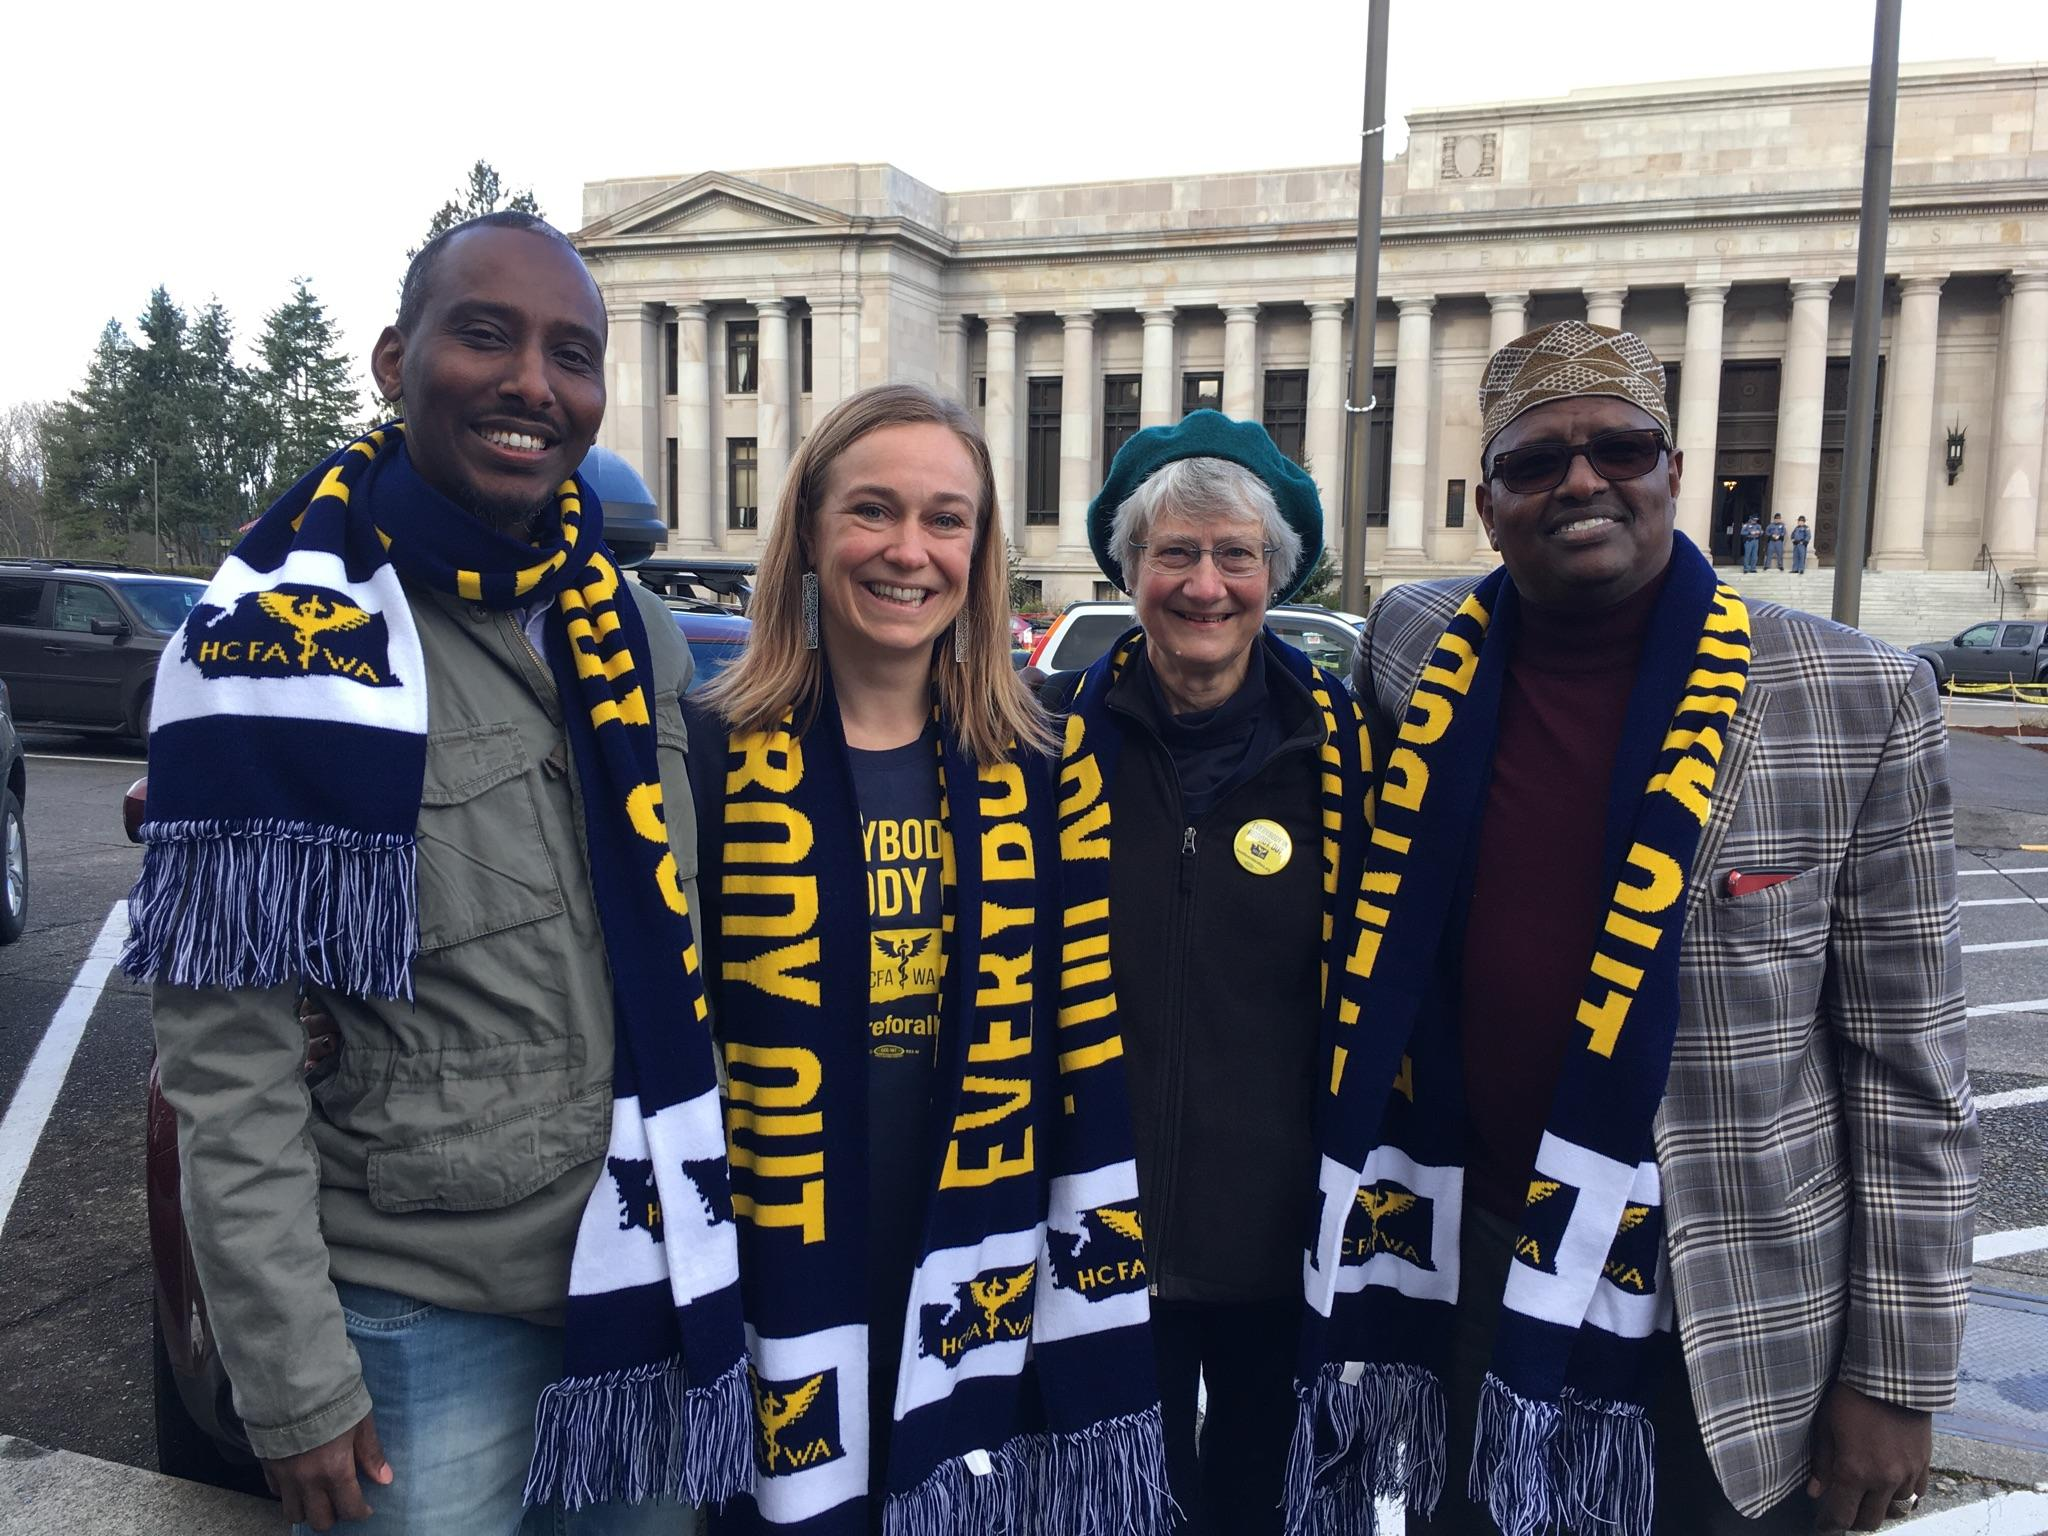 Ahmed Abdi, Program Director Bevin McLeod, HCFA-WA President Marcia Stedman, and Mohamed Sheik Hassan at our January Rally